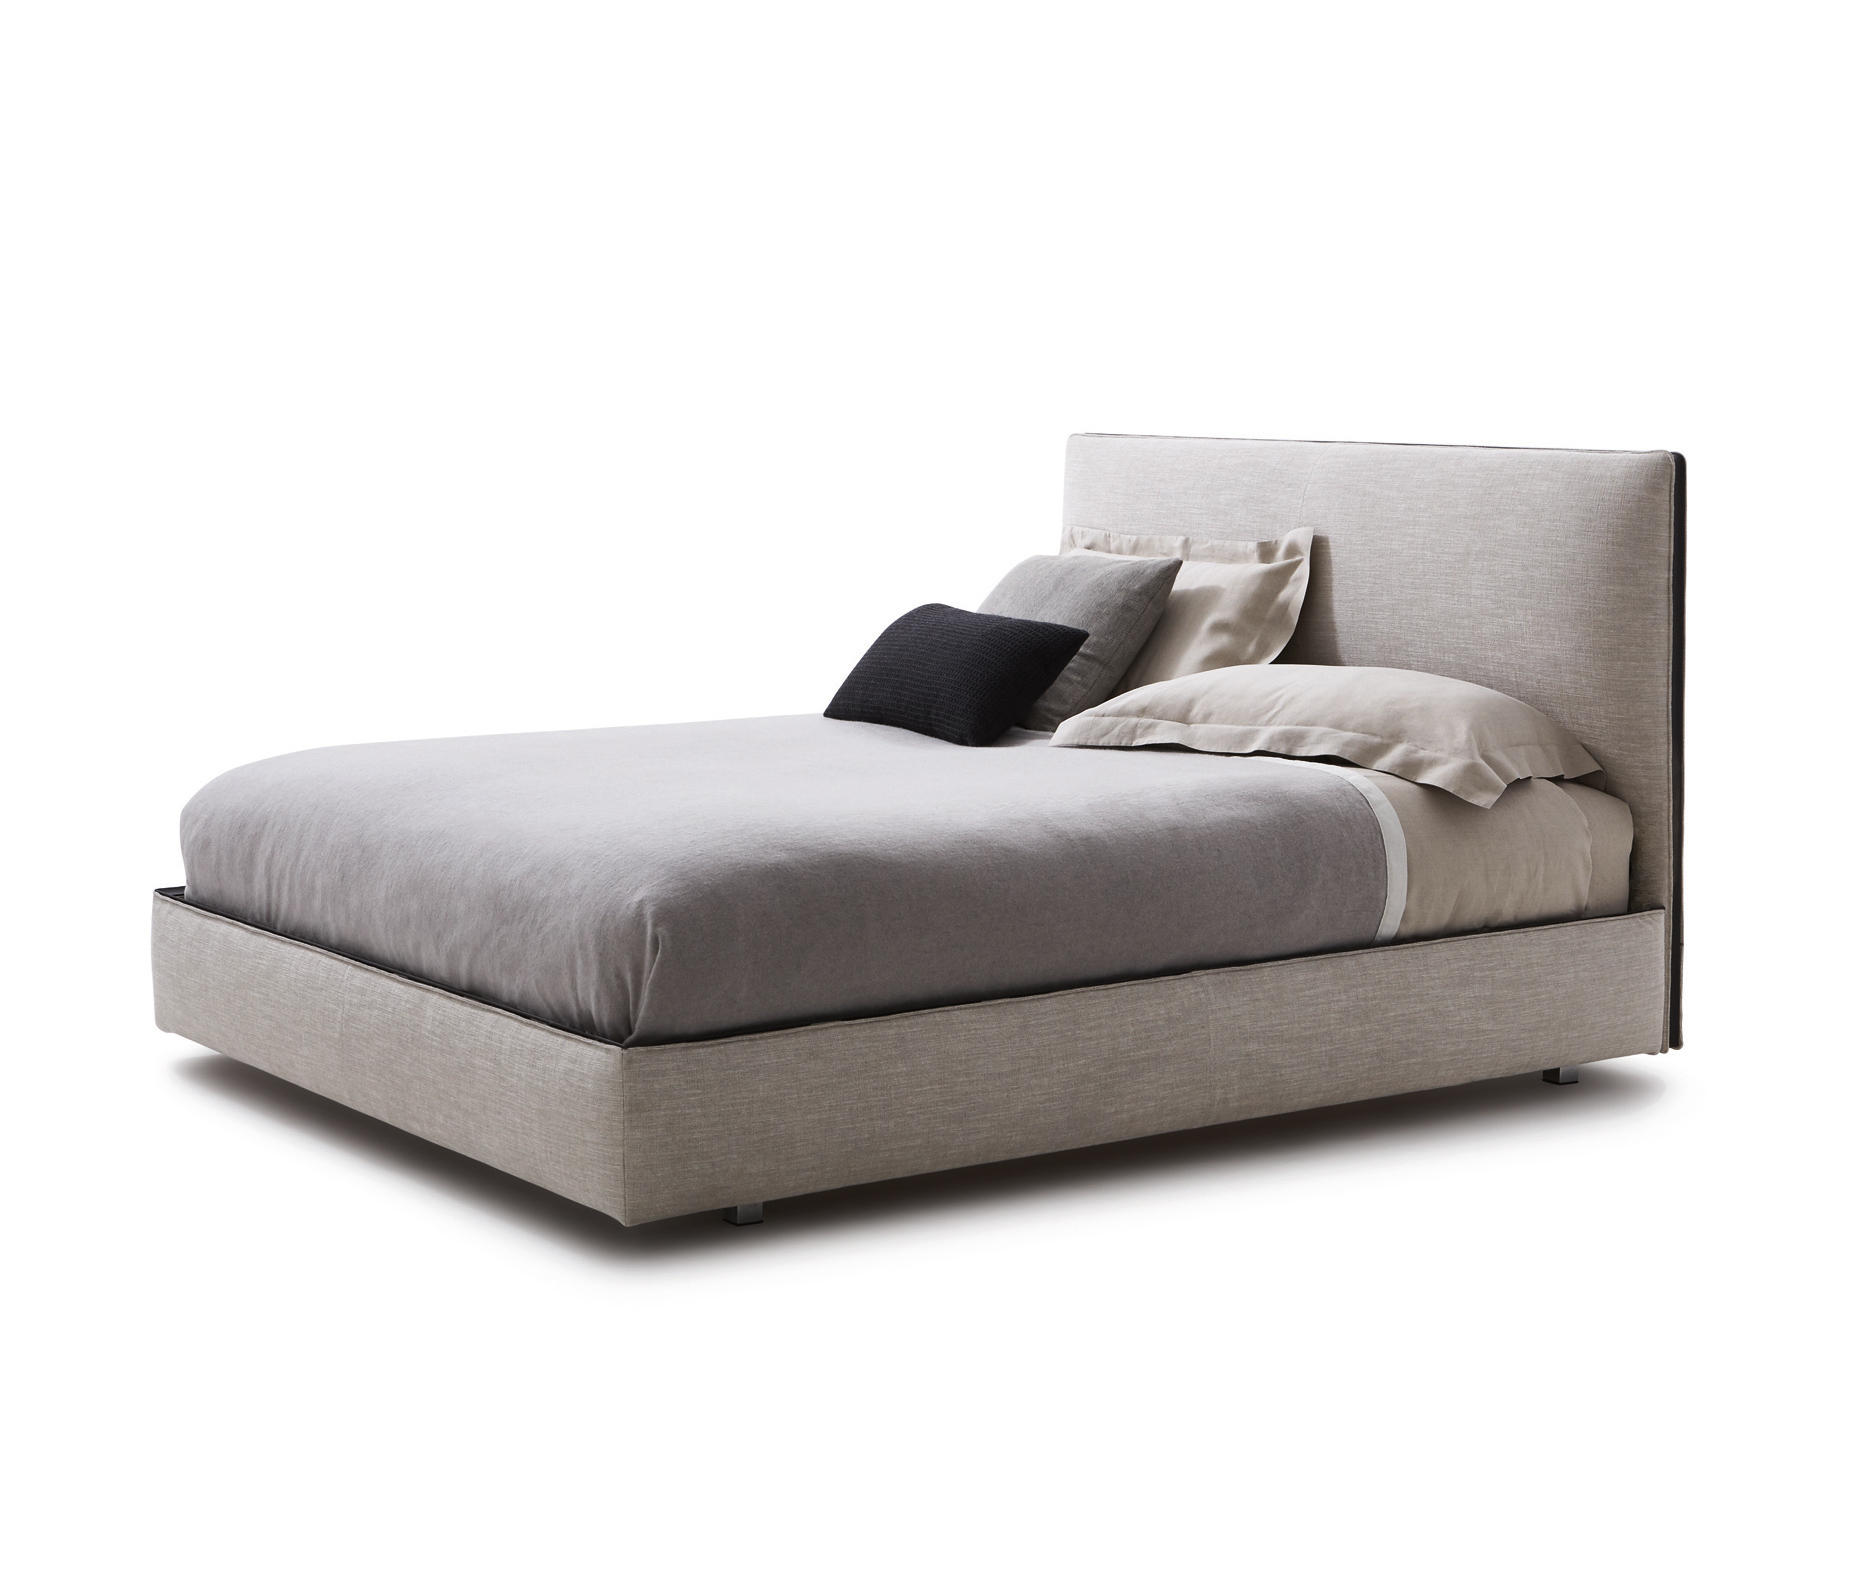 Ribbon camas de molteni c architonic - Letto wish molteni ...